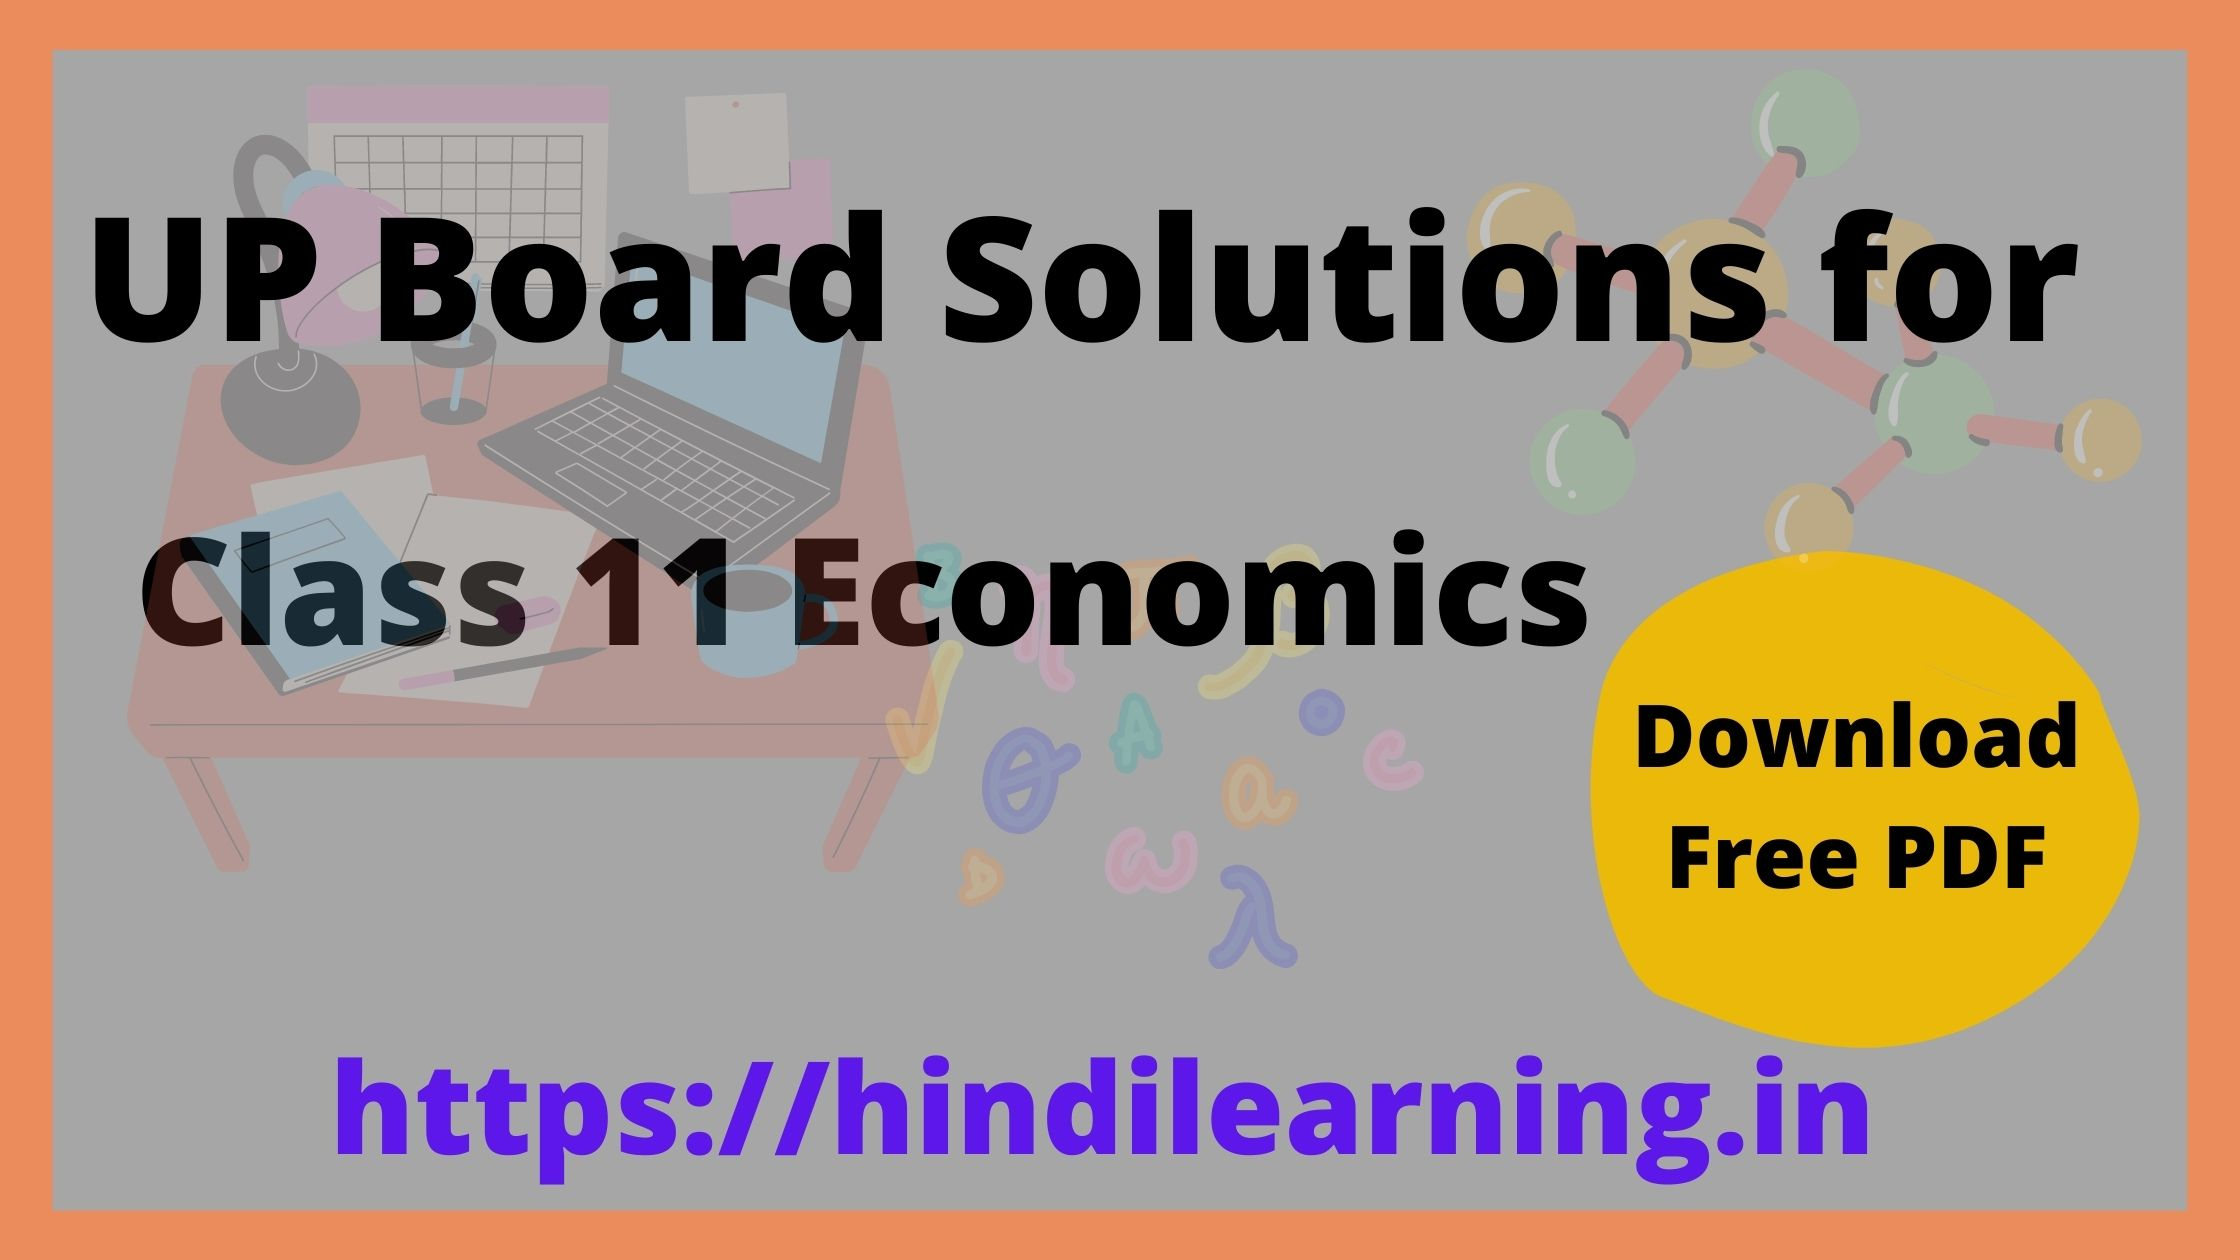 UP Board Solutions for Class 11 Economics अर्थशास्त्र